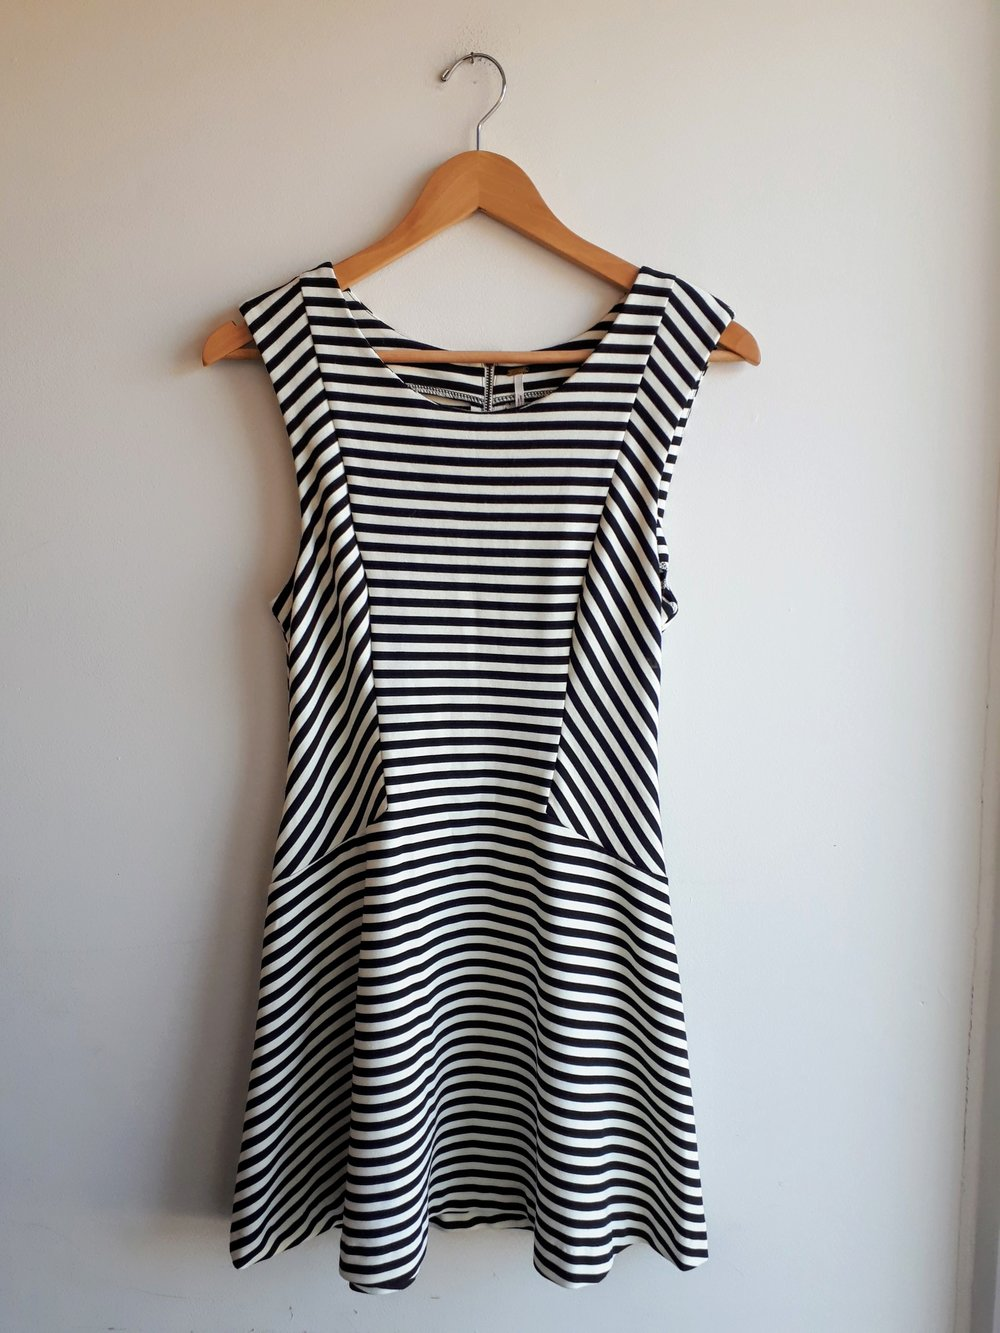 Free People dress; Size M, $34